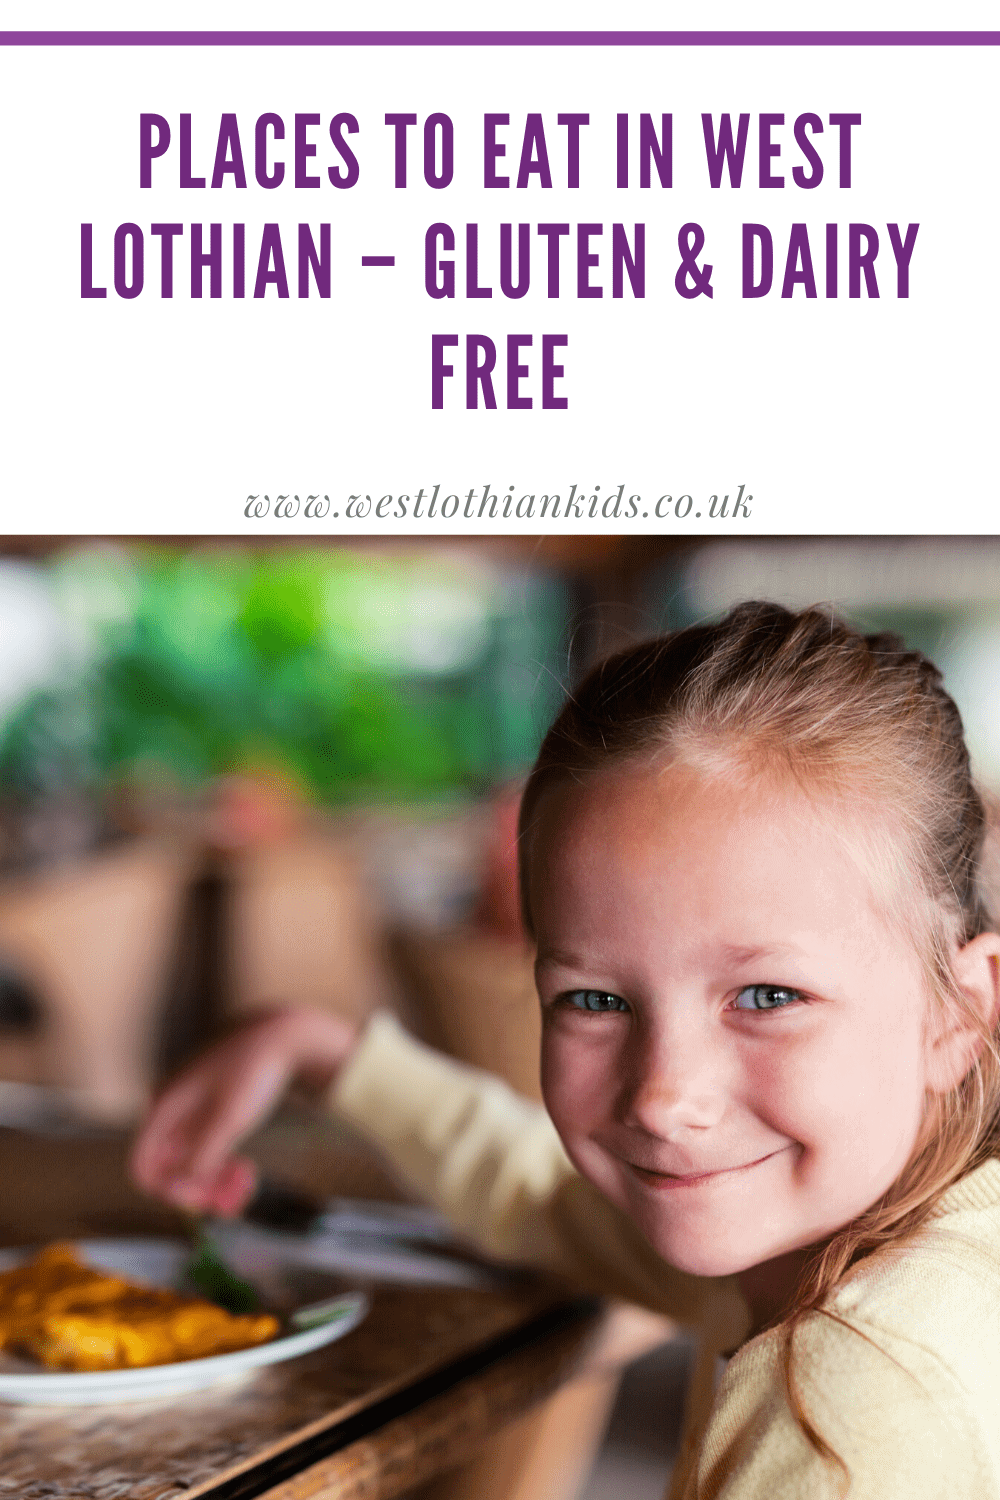 Places to eat in West Lothian Gluten and Dairy Free | Allergy friendly places to eat in West Lothian